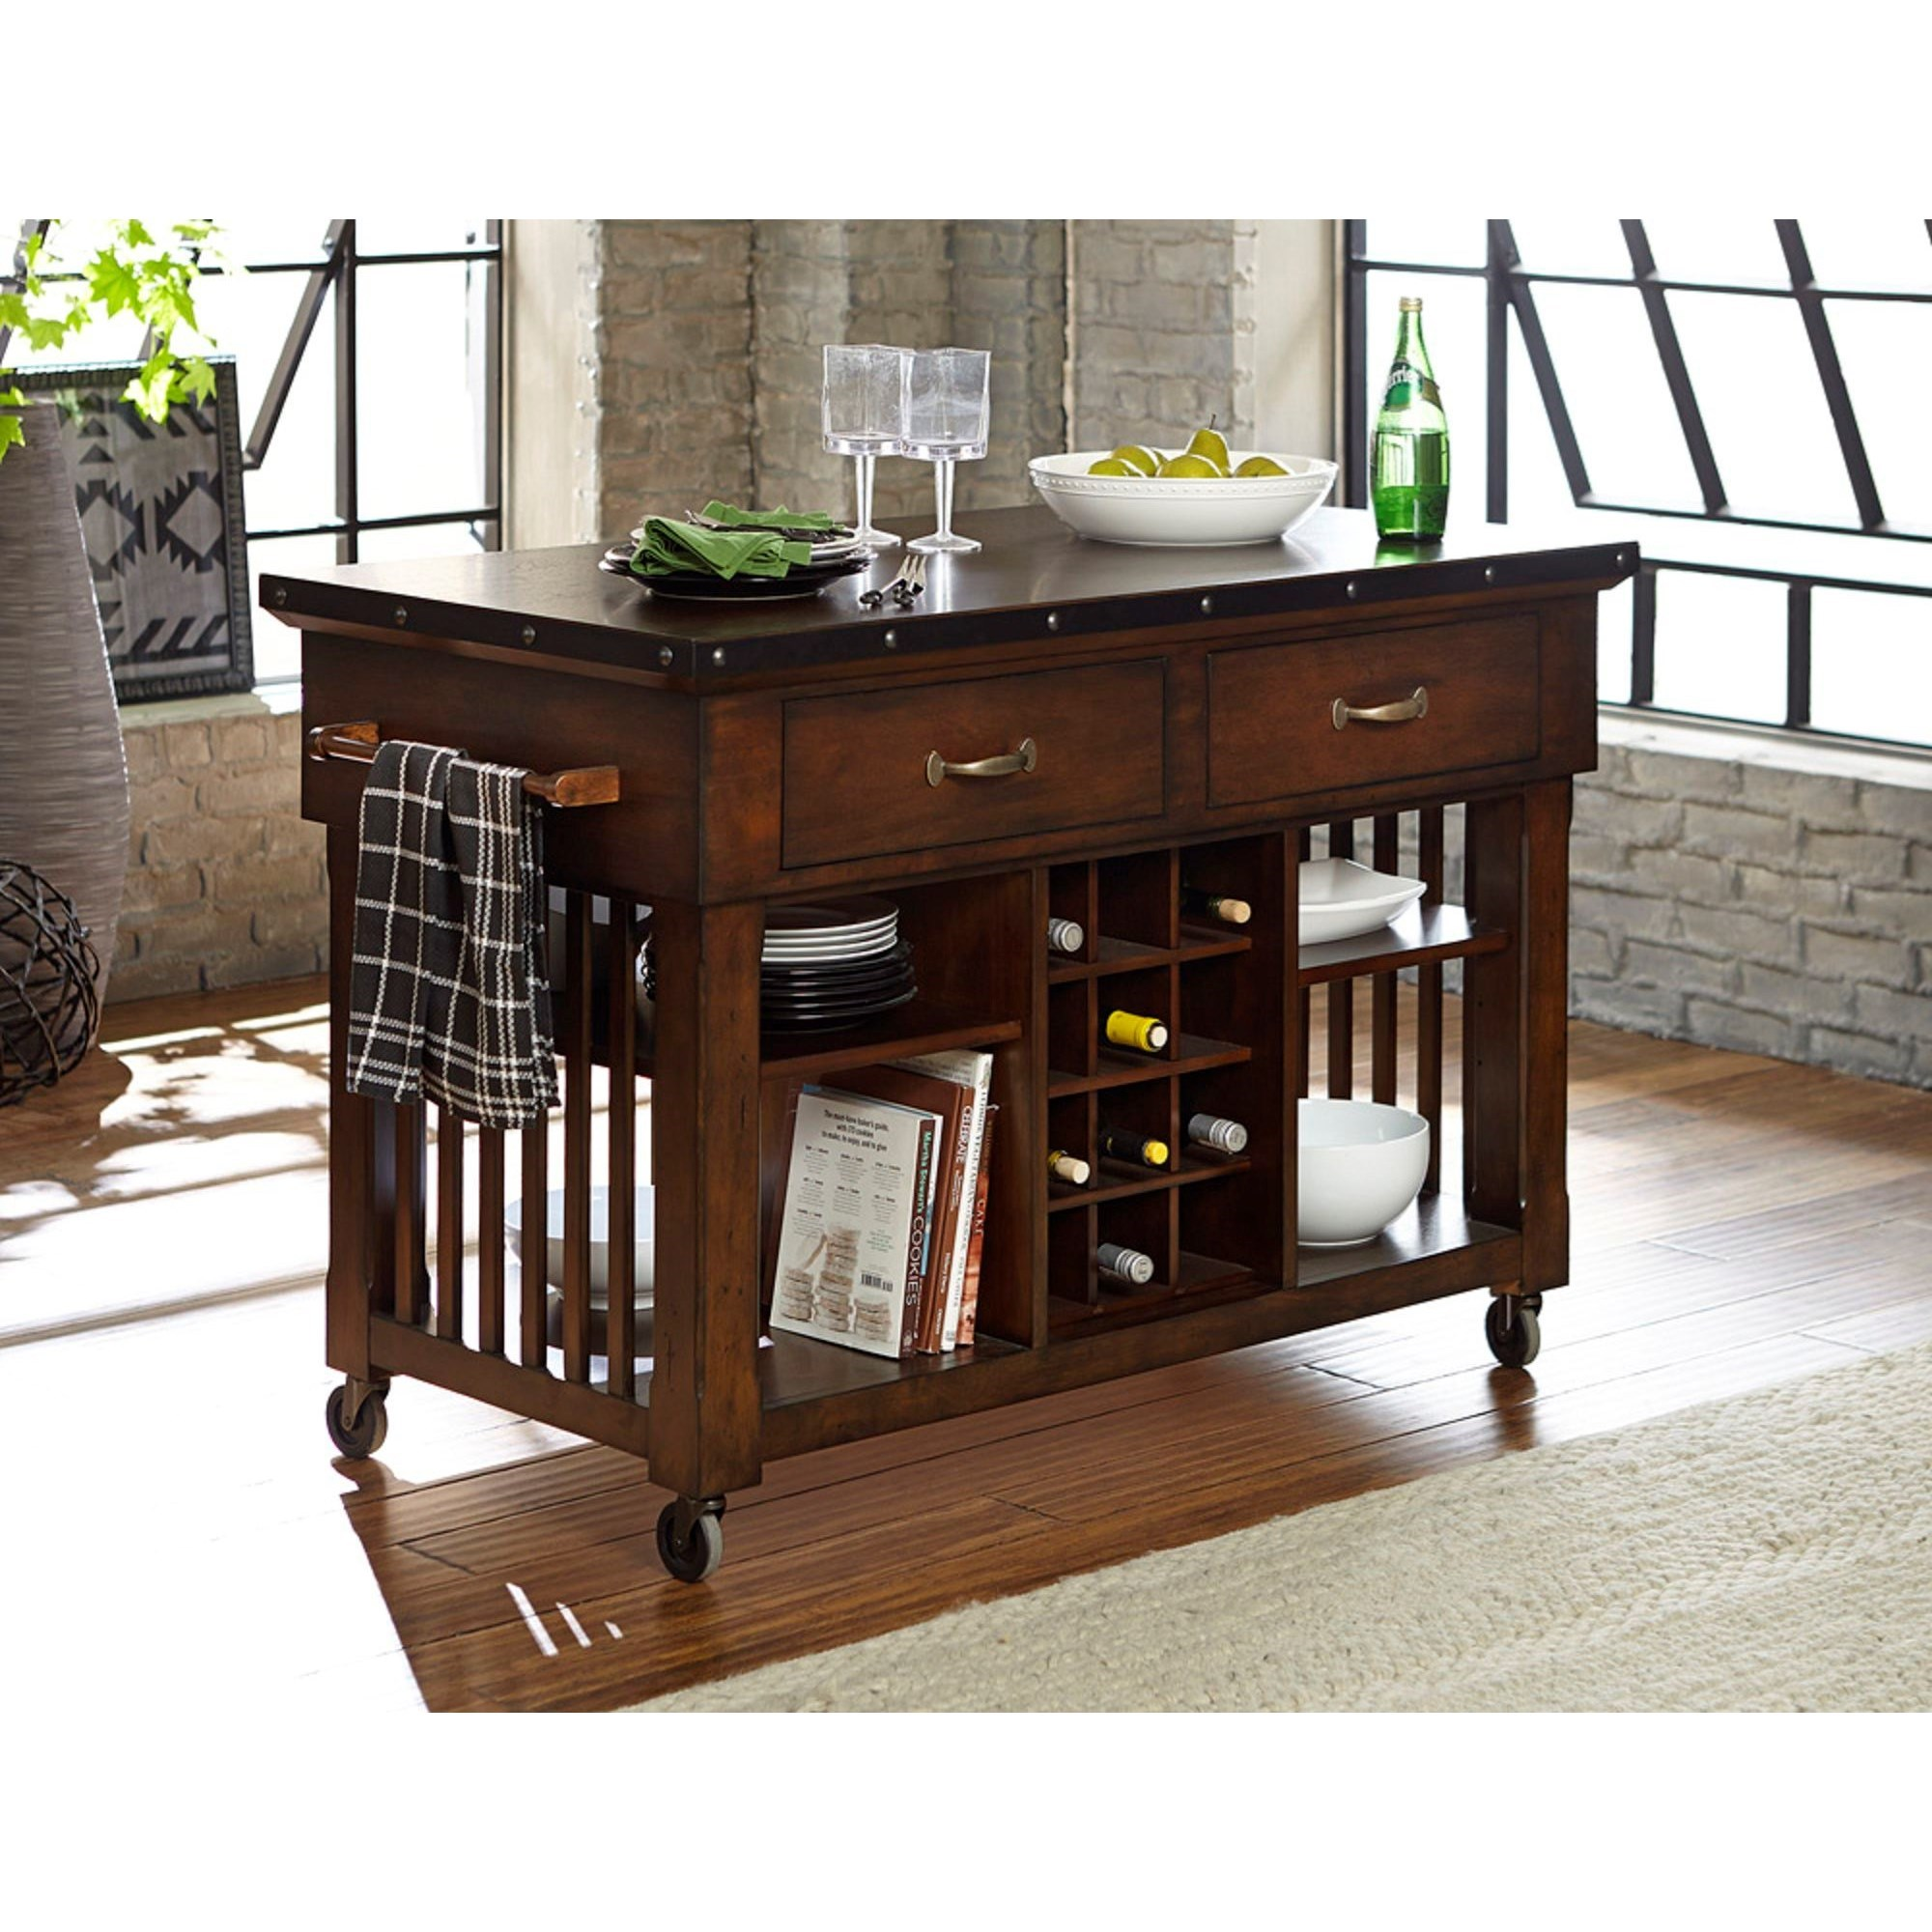 Homelegance Schleiger Industrial Kitchen Island Cart With